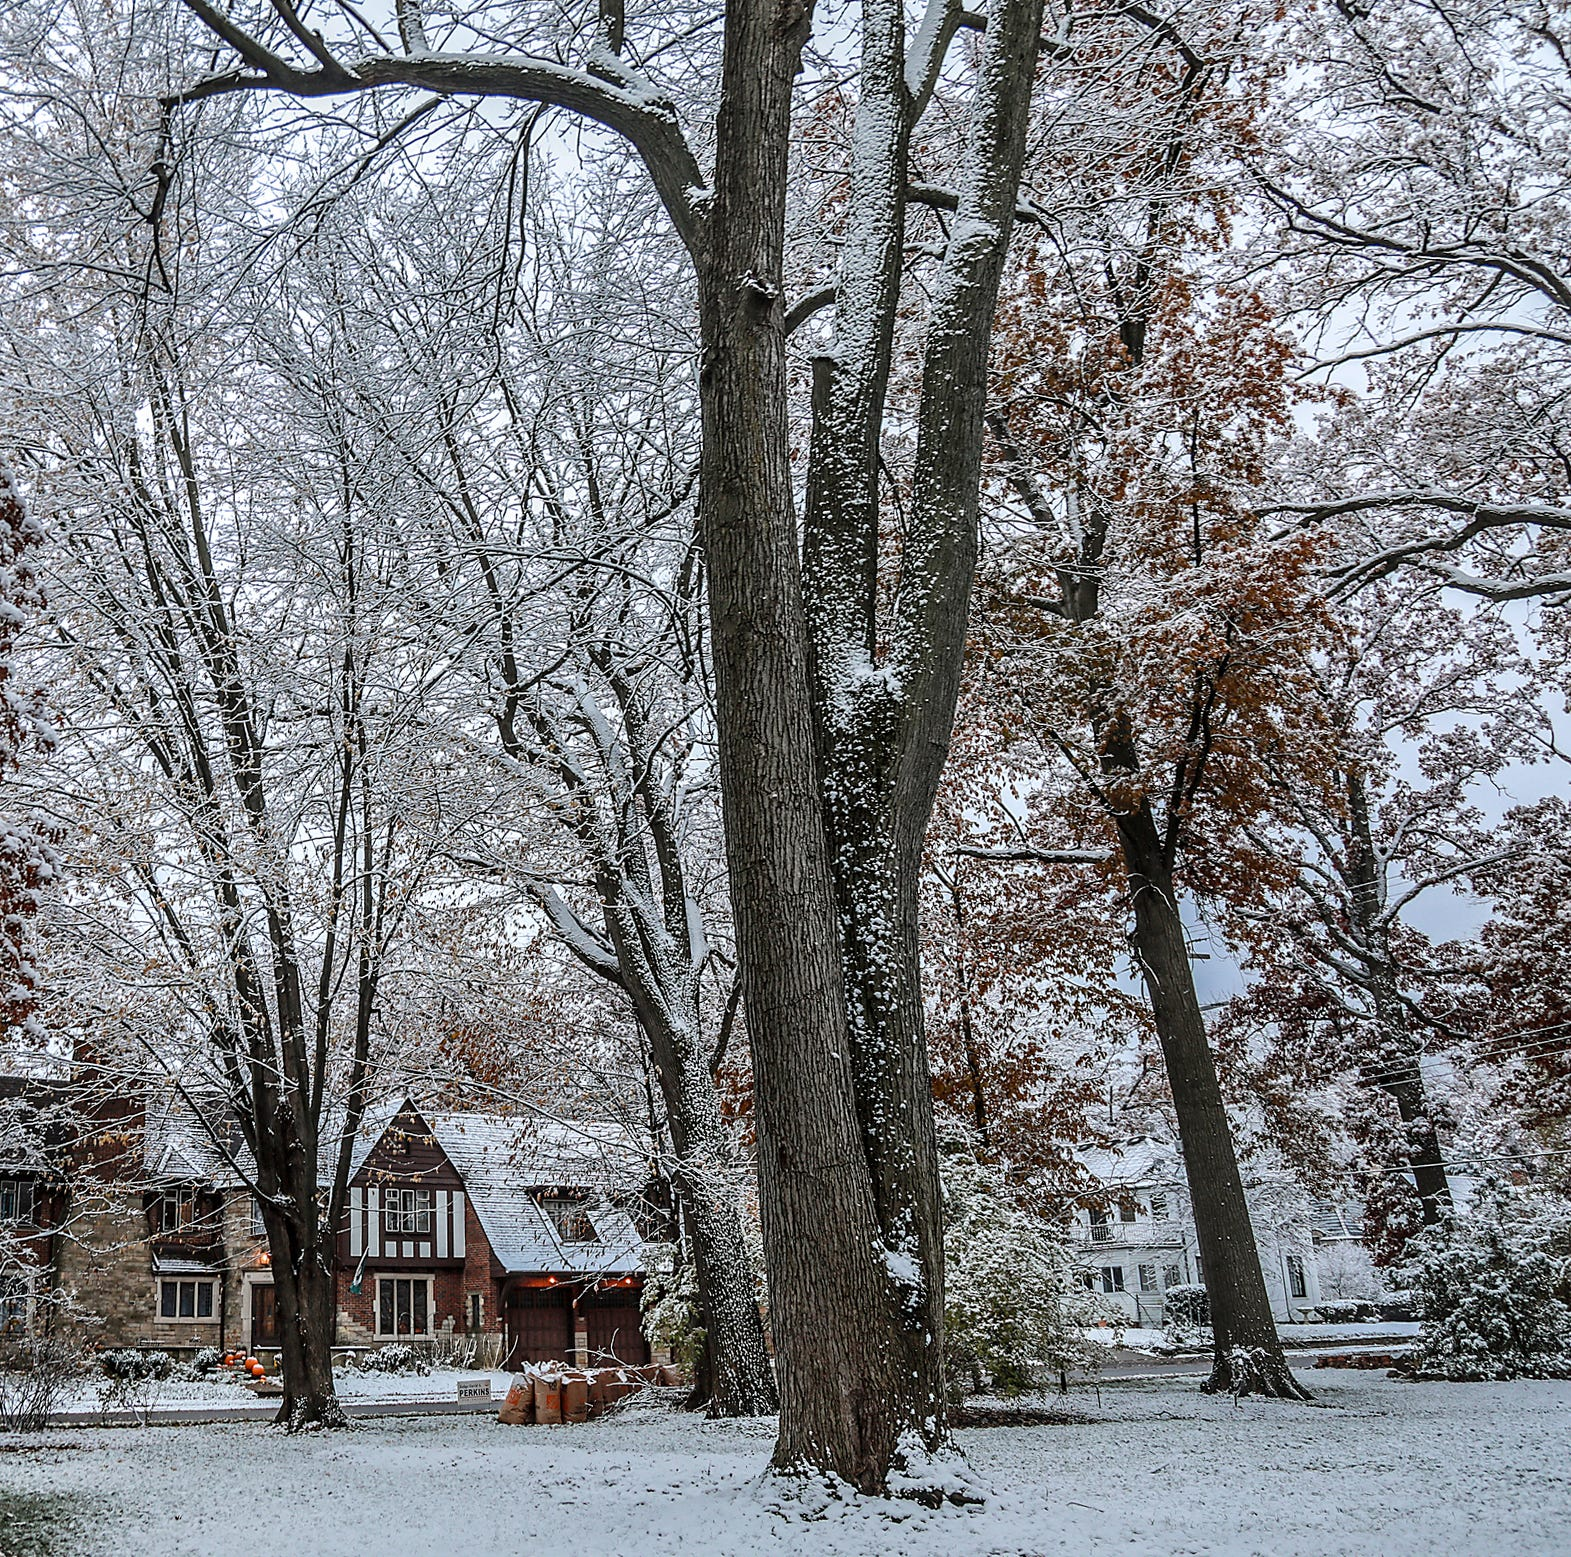 Thanksgiving weather in metro Detroit expected to be coldest in 5 years